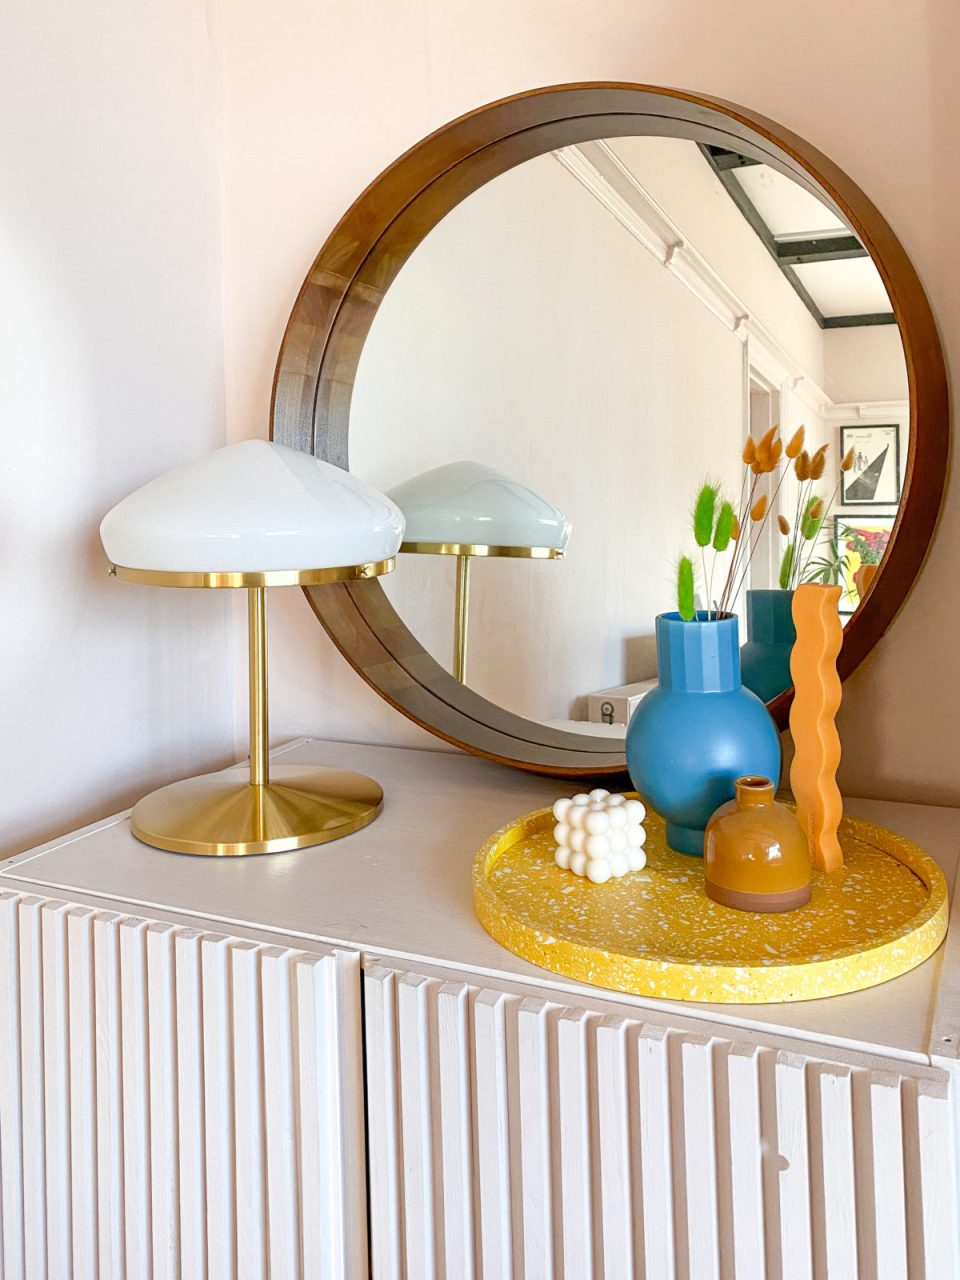 70s style Scandinavian lamp on IKEA hack fluted wood unit with vases